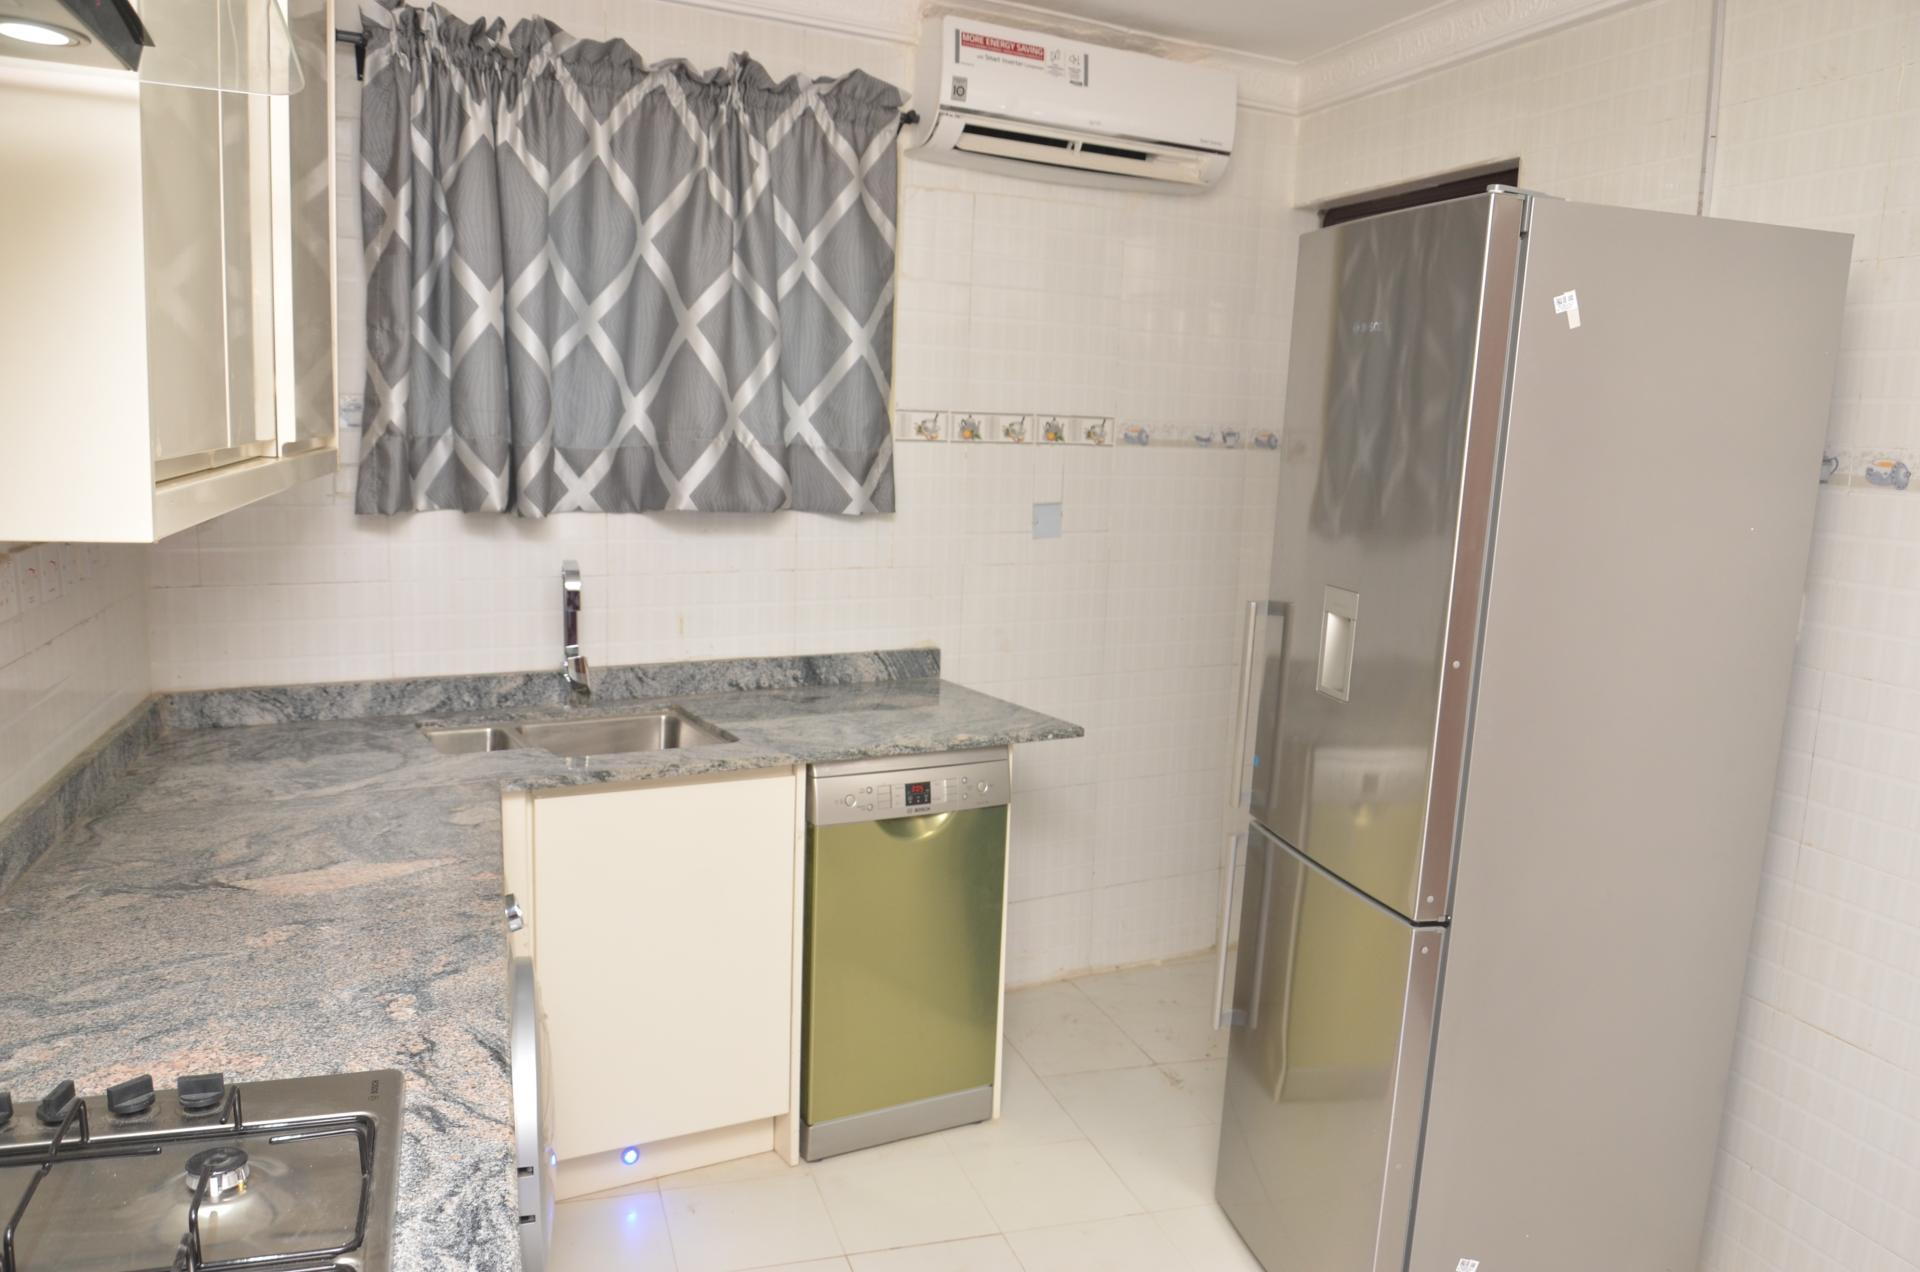 Kitchen facilities at SSCFG Apartments and Suites